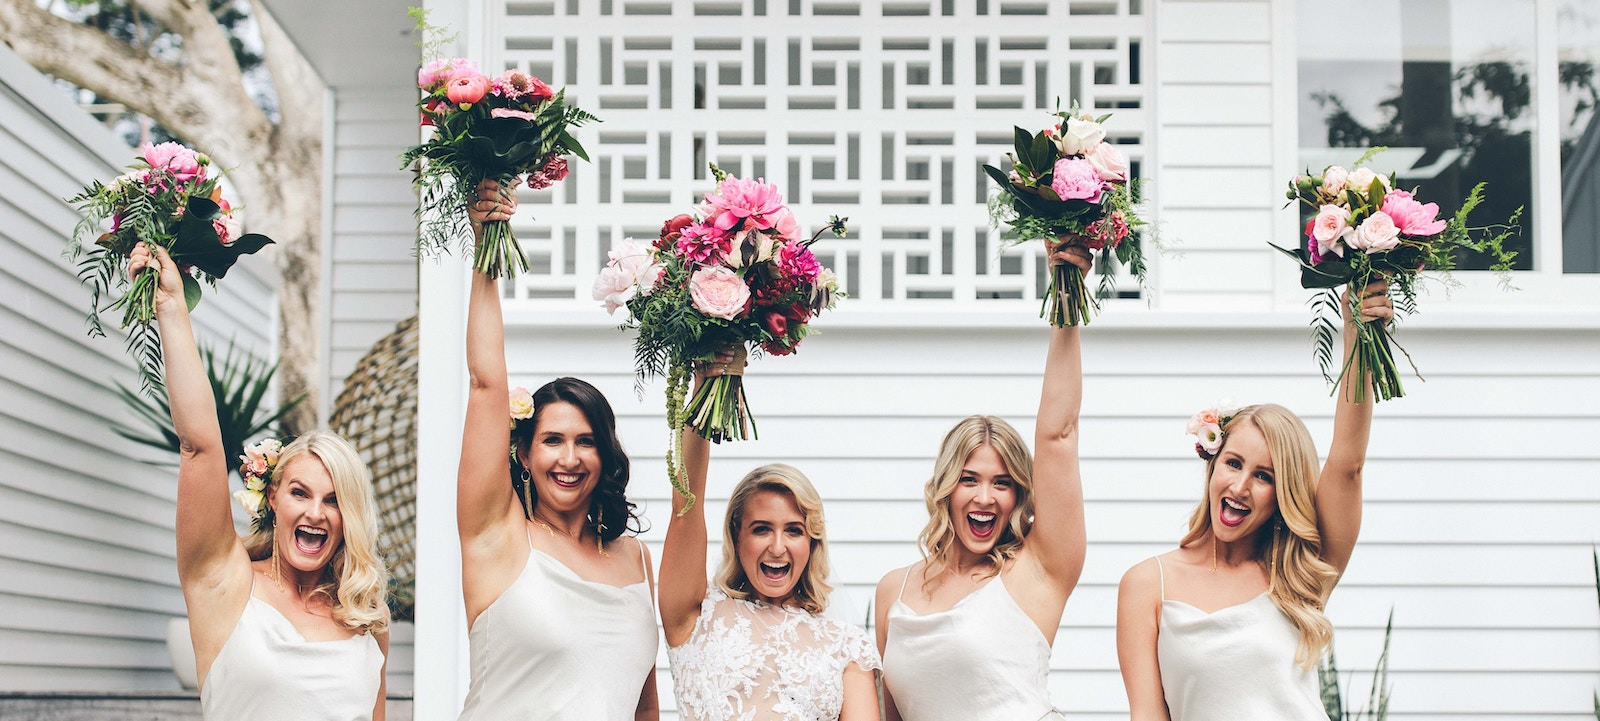 RUSTIC DONE RIGHT: A WHIMSICAL BYRON BAY WEDDING